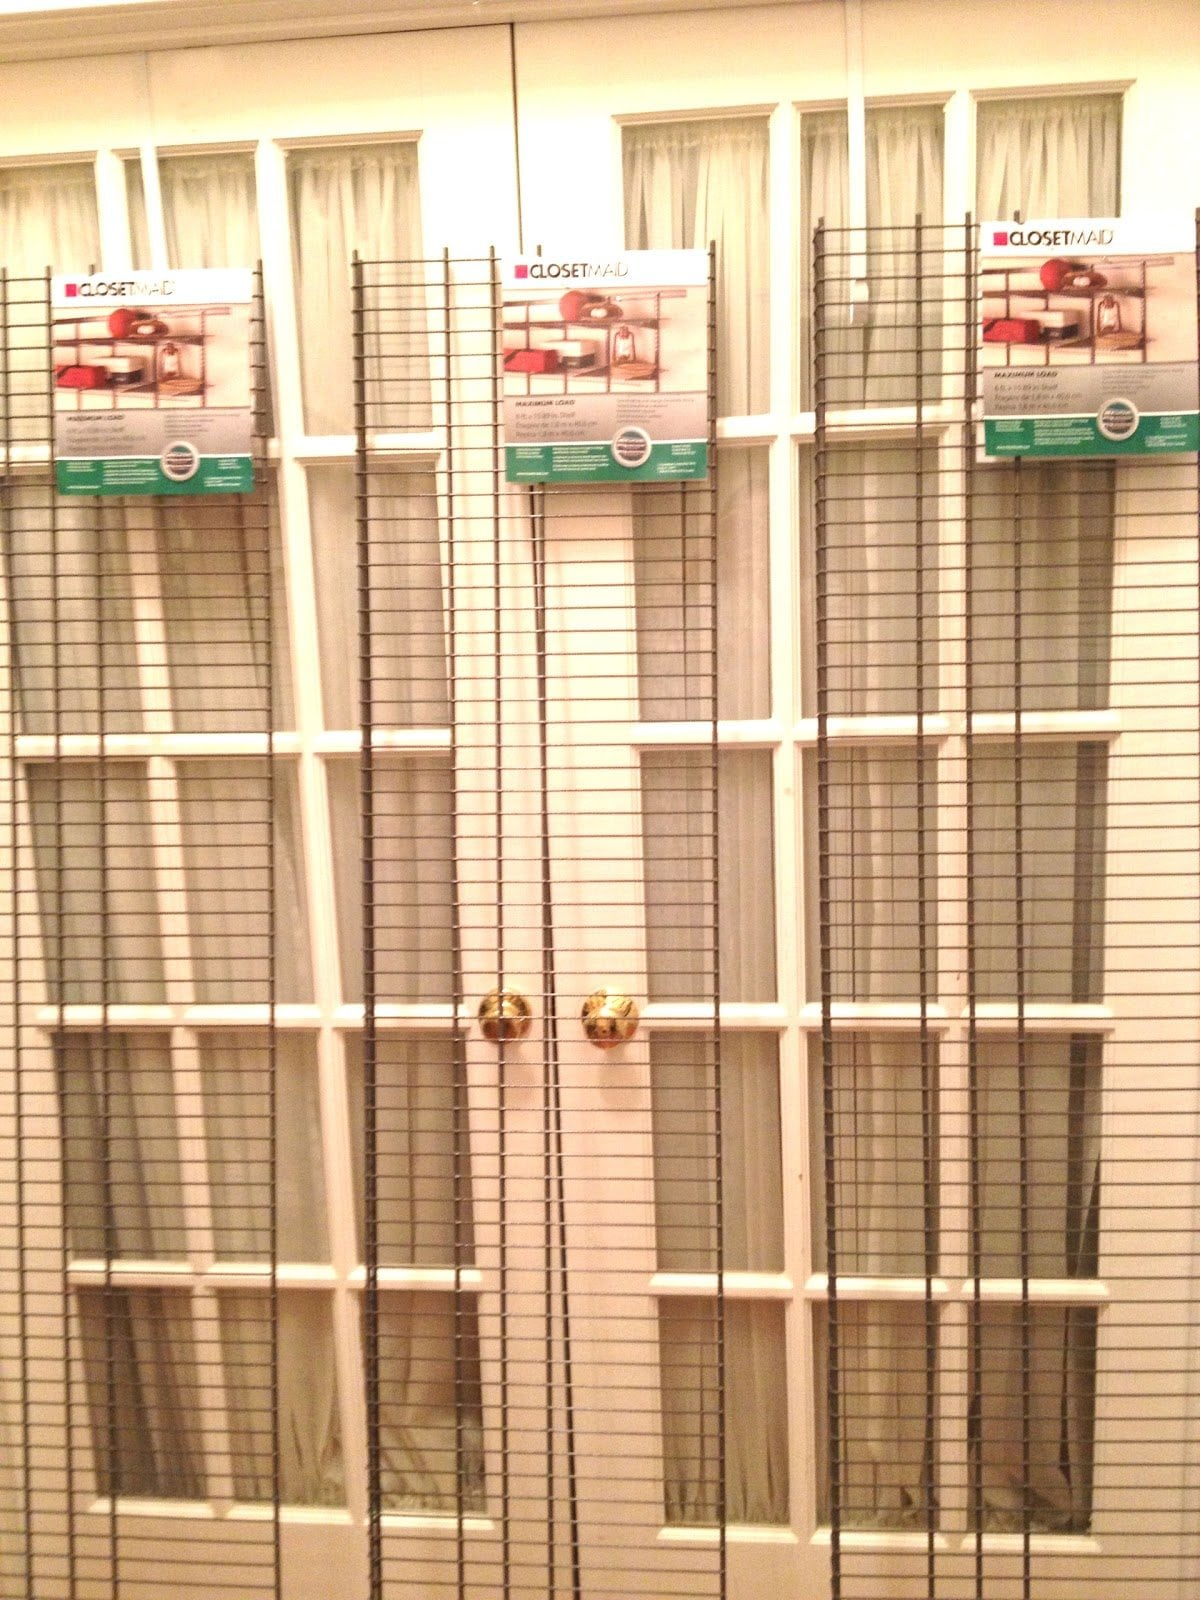 How to make a wreath craft show display or storage tower for How to make a ring display for craft shows